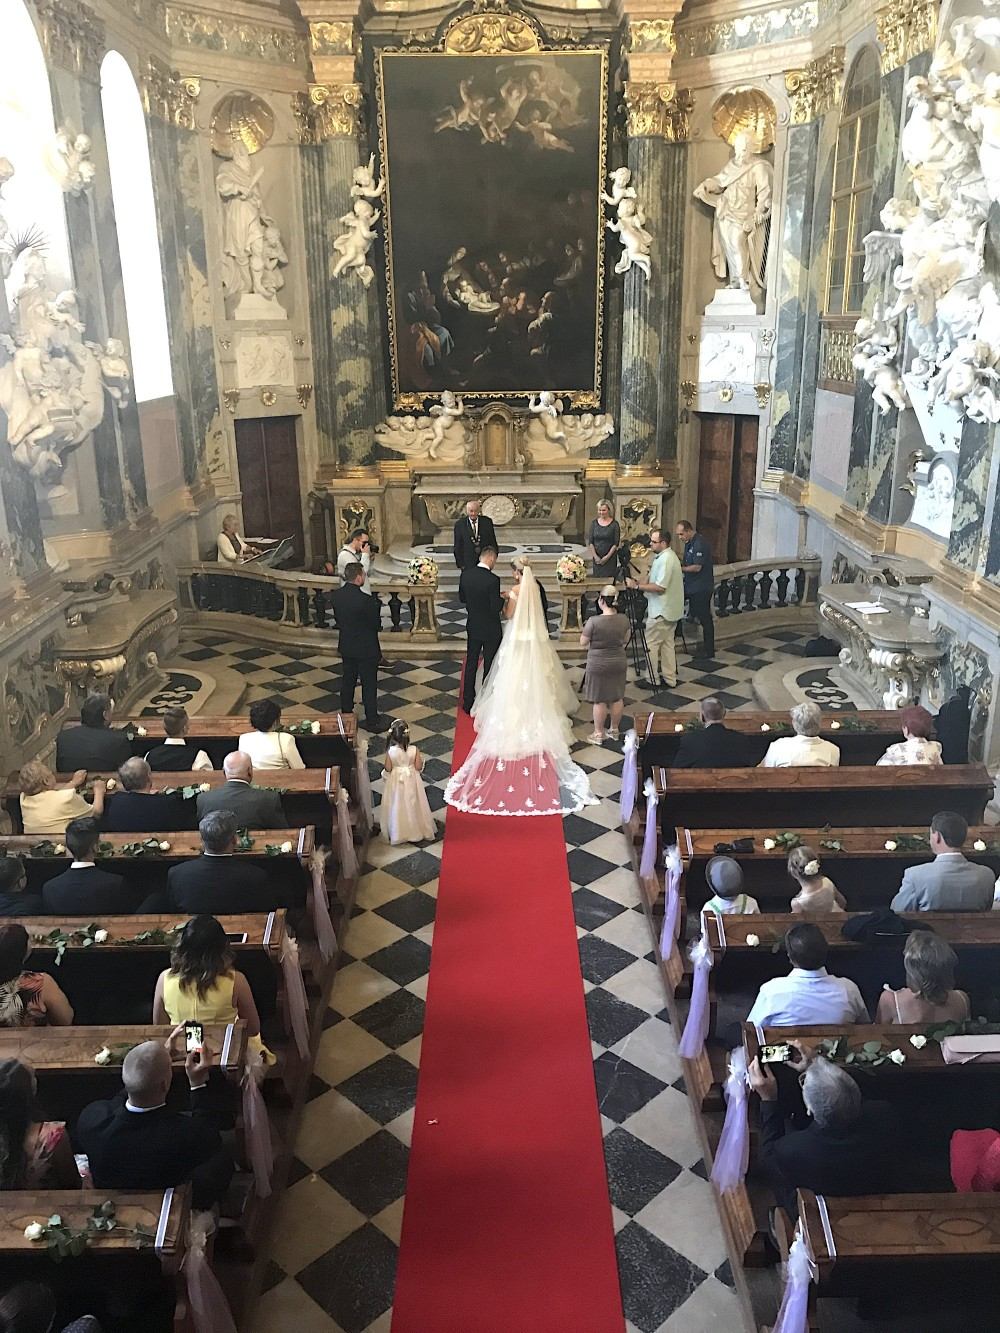 The original baroque chapel at Valtice Castle offers an amazing setting for the wedding ceremony, both civil and religious. – © Lenka Beránková